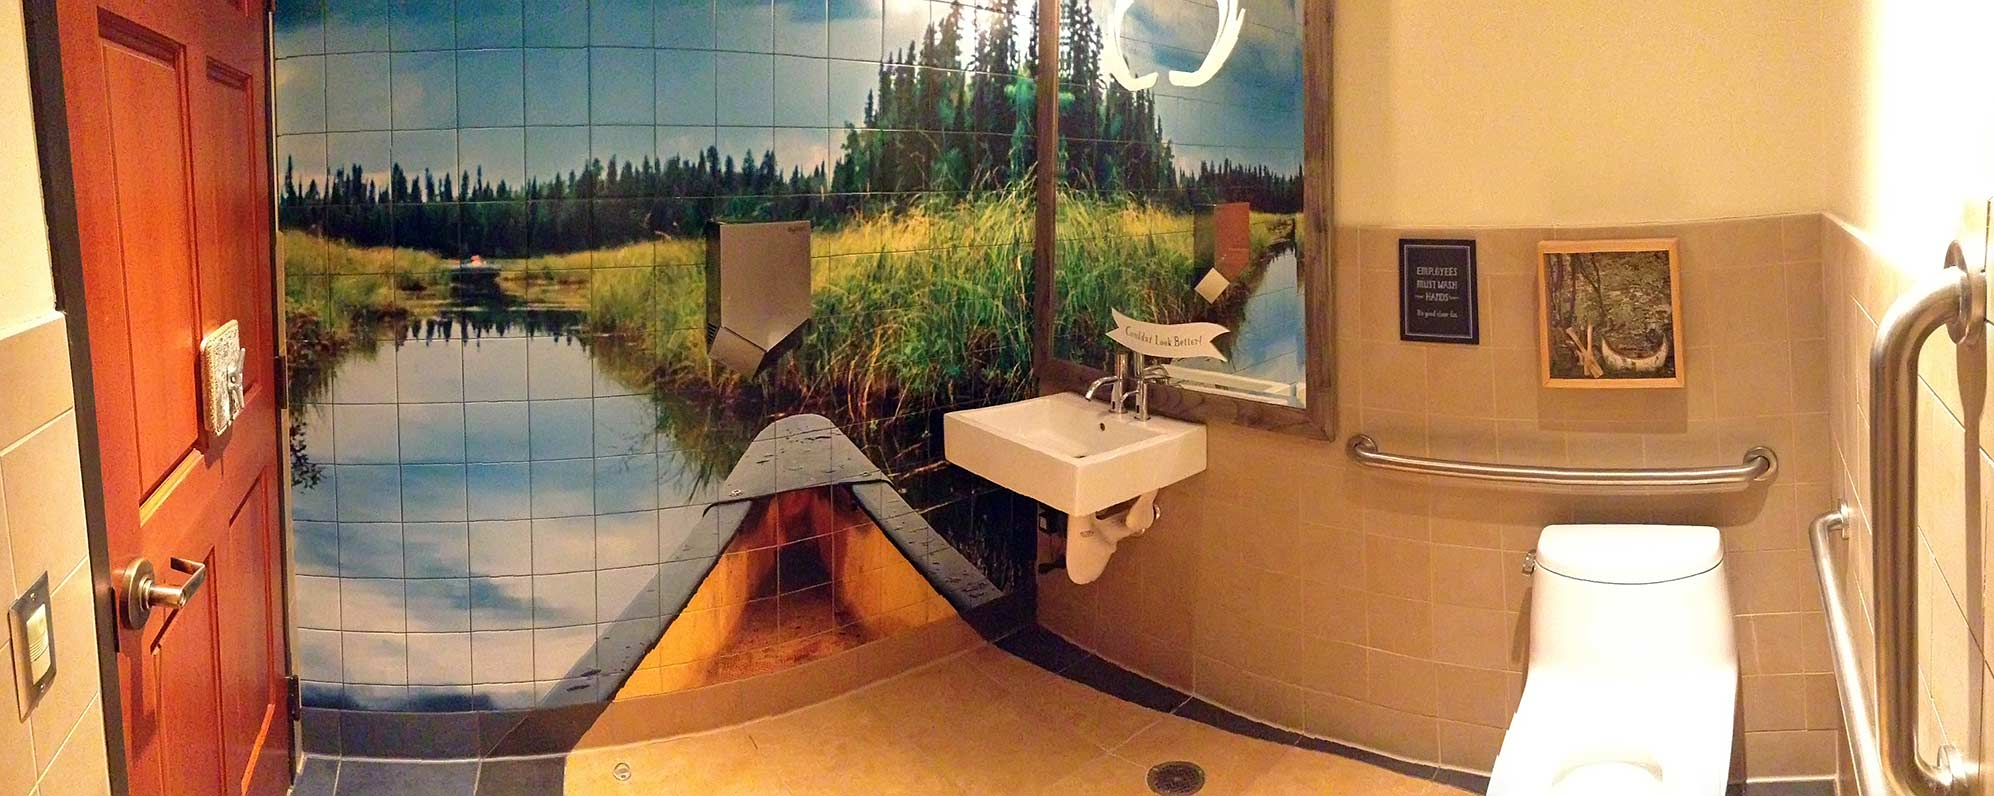 Caribou-Coffee-Men's-Restroom-Canoe-01